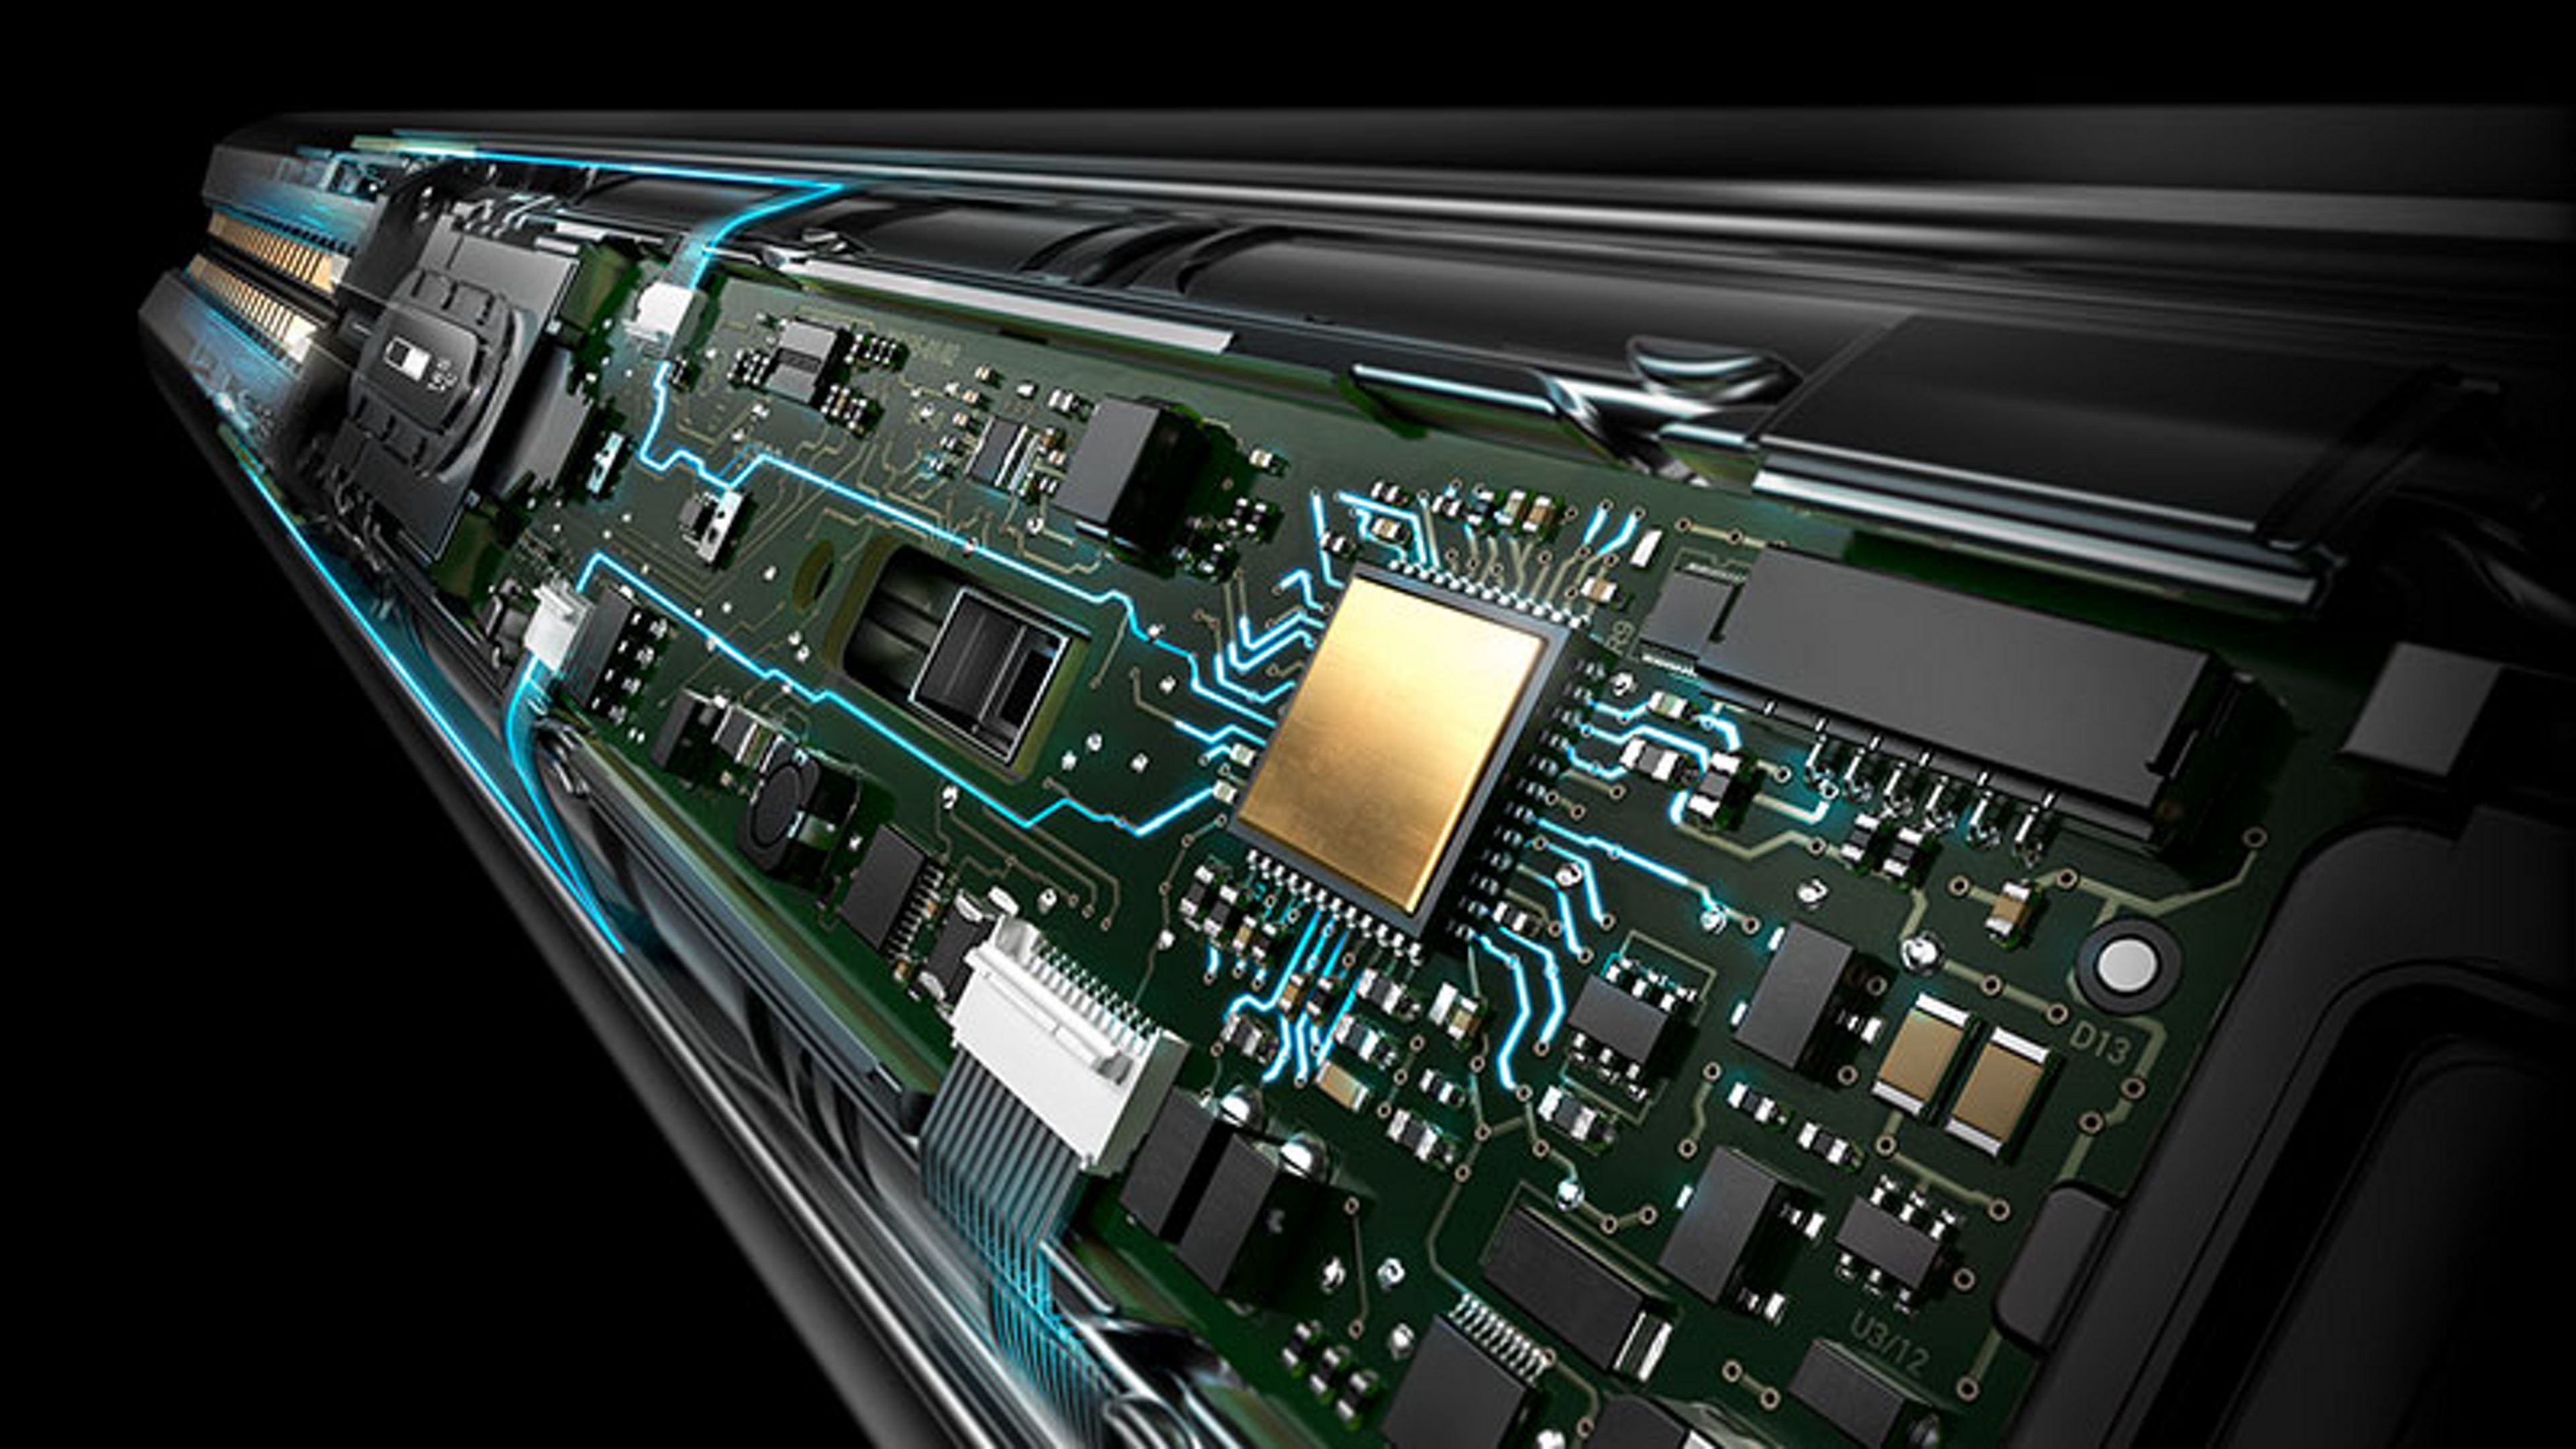 Tech image of intelligent amicroprocessors